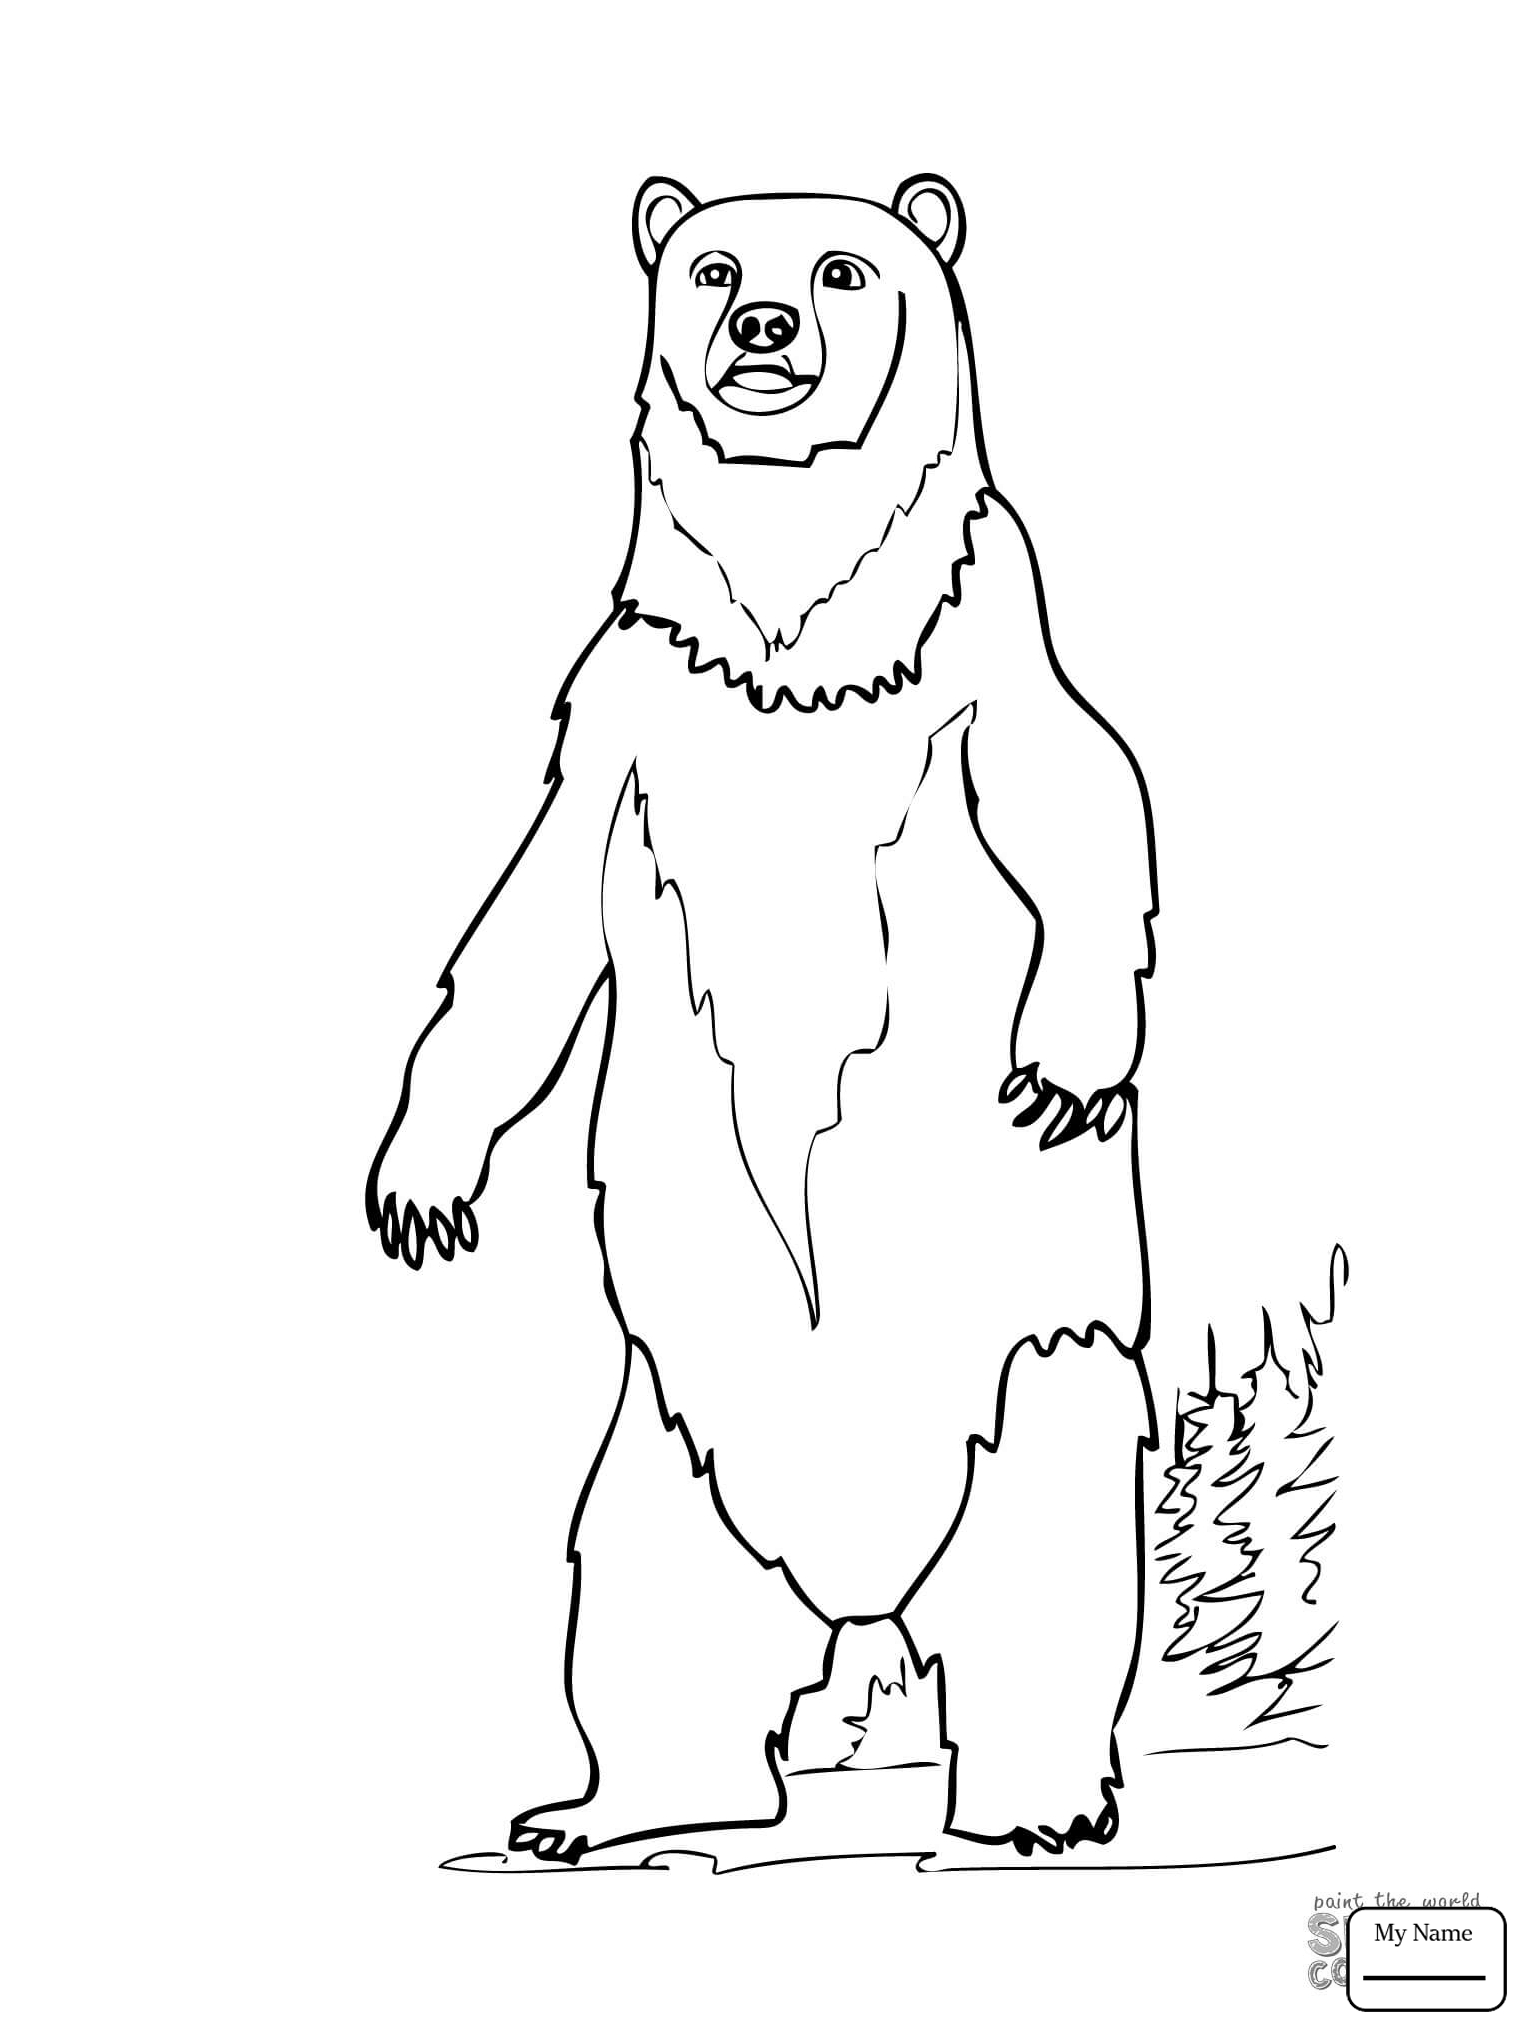 Grizzly Bear Drawing Step By Step at GetDrawings.com | Free for ...